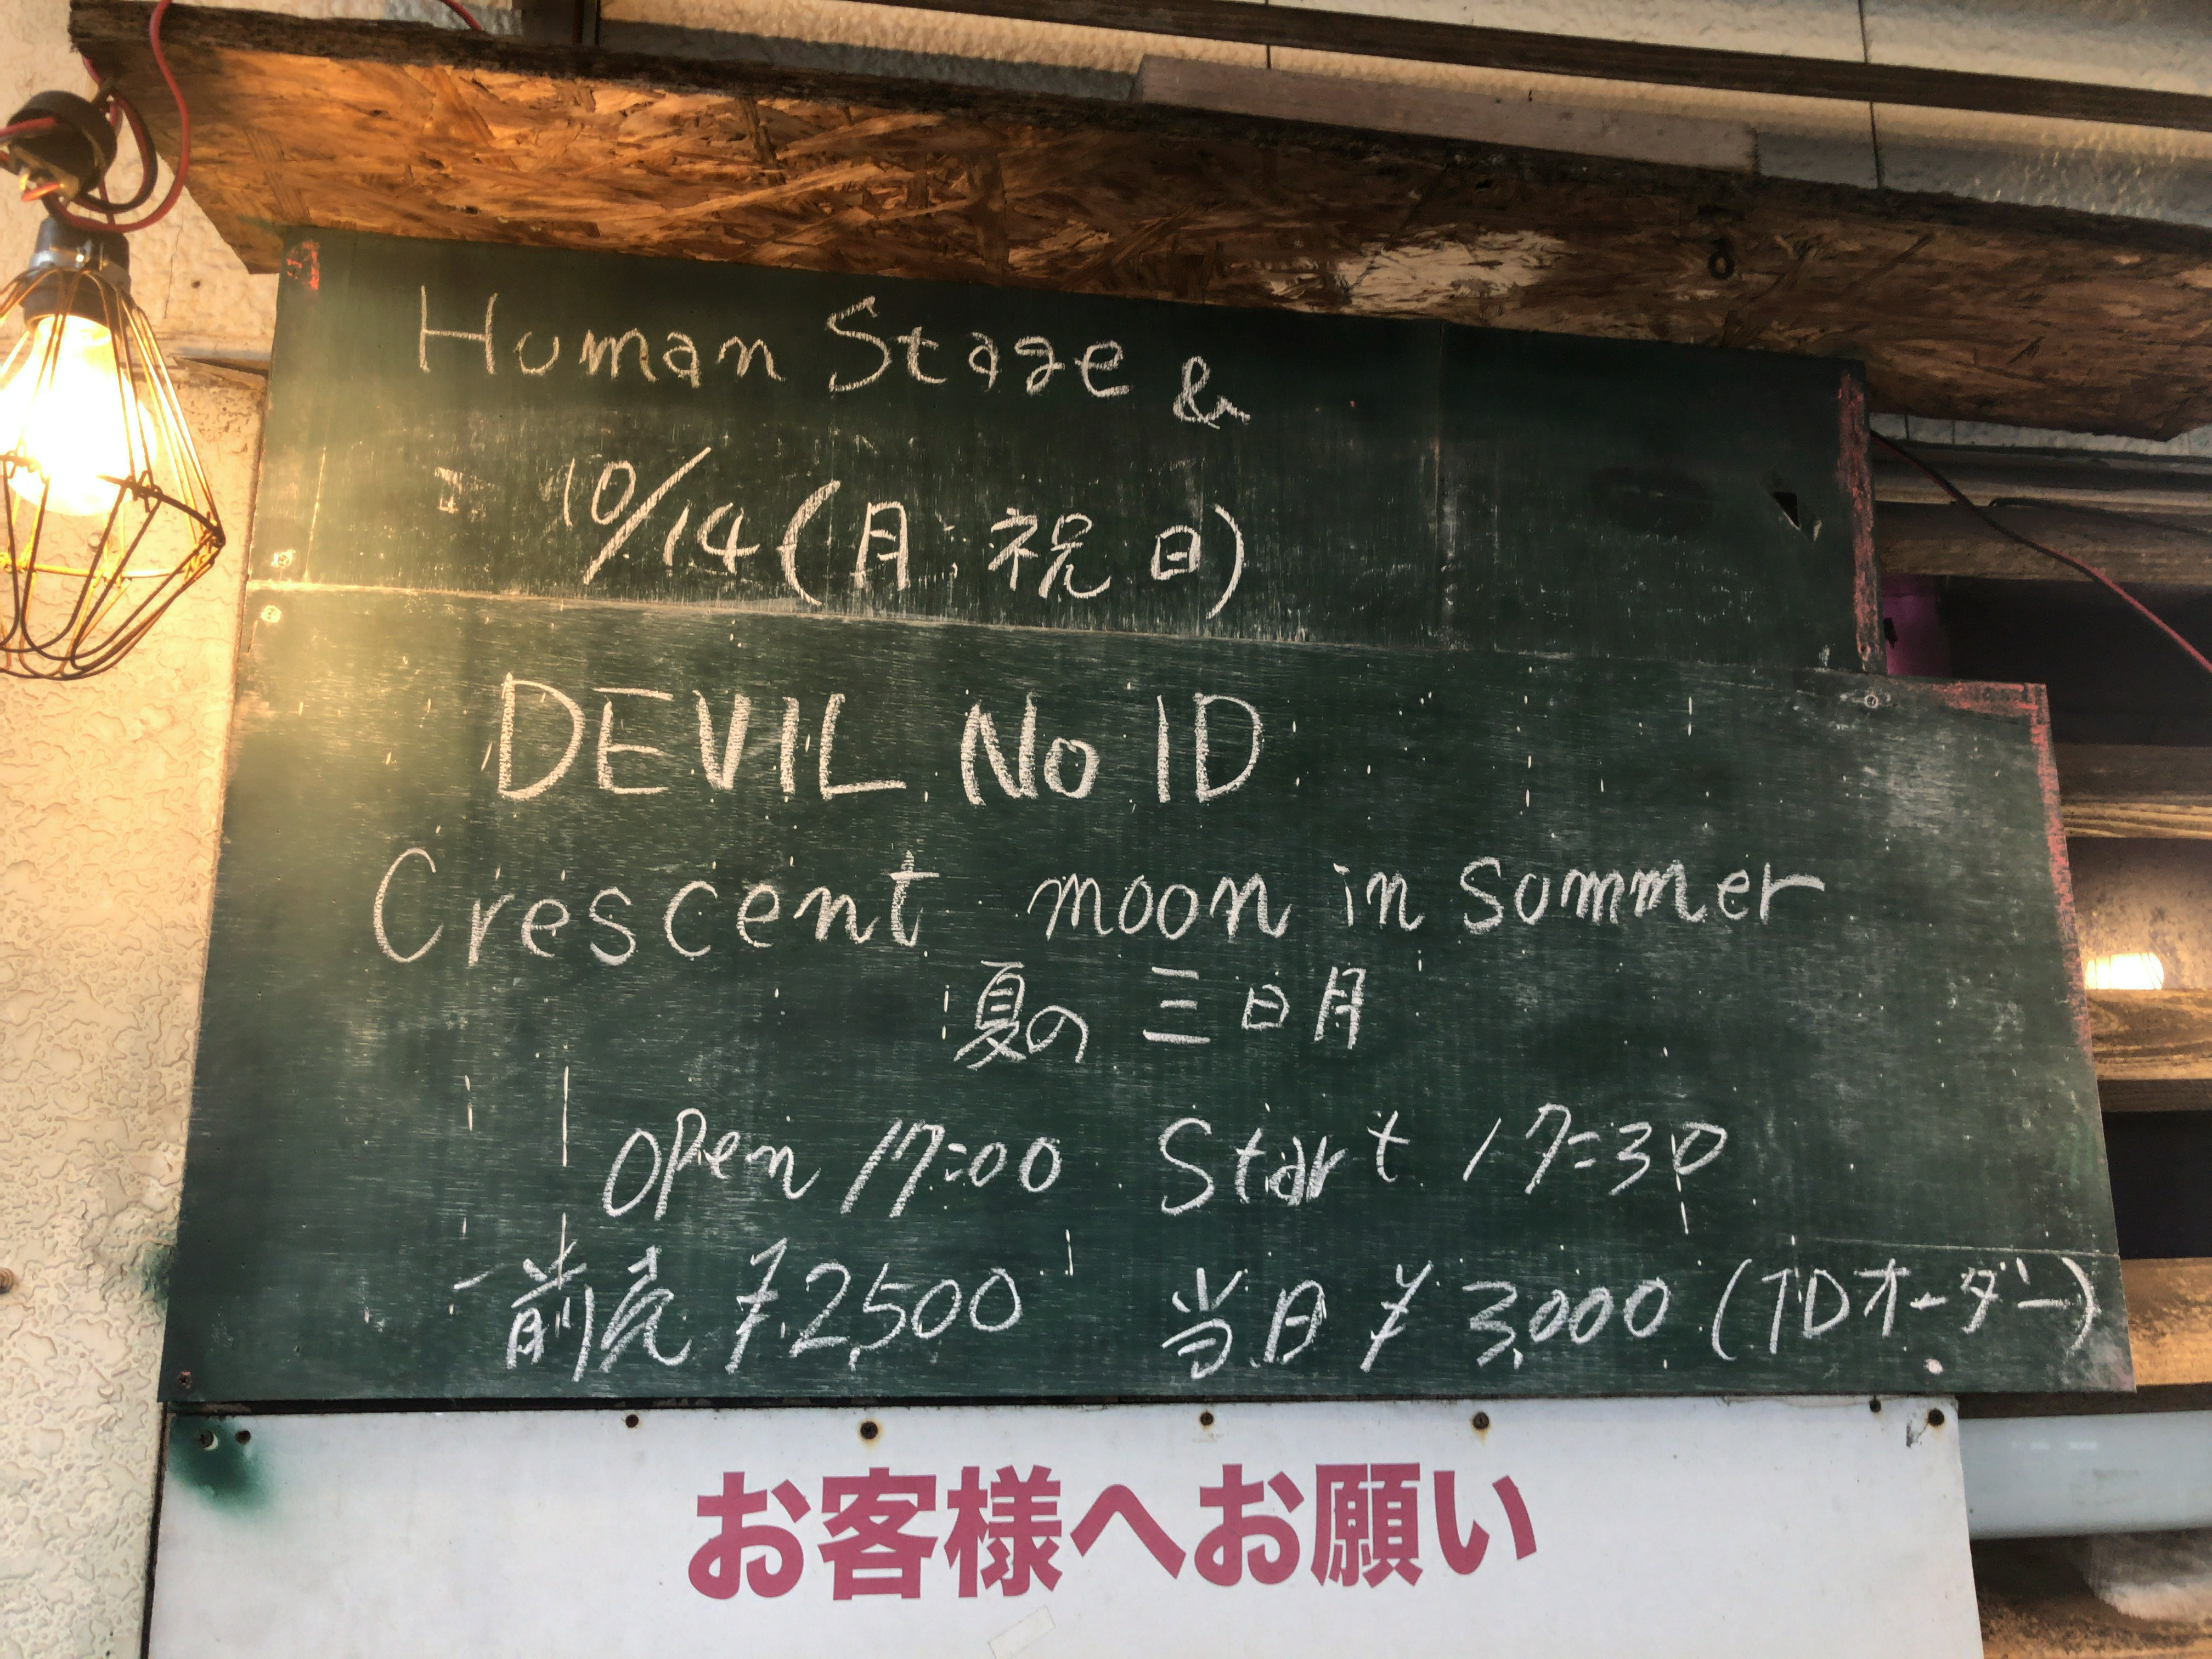 DEVIL NO ID 「Crescent moon in summer 夏の三日月」